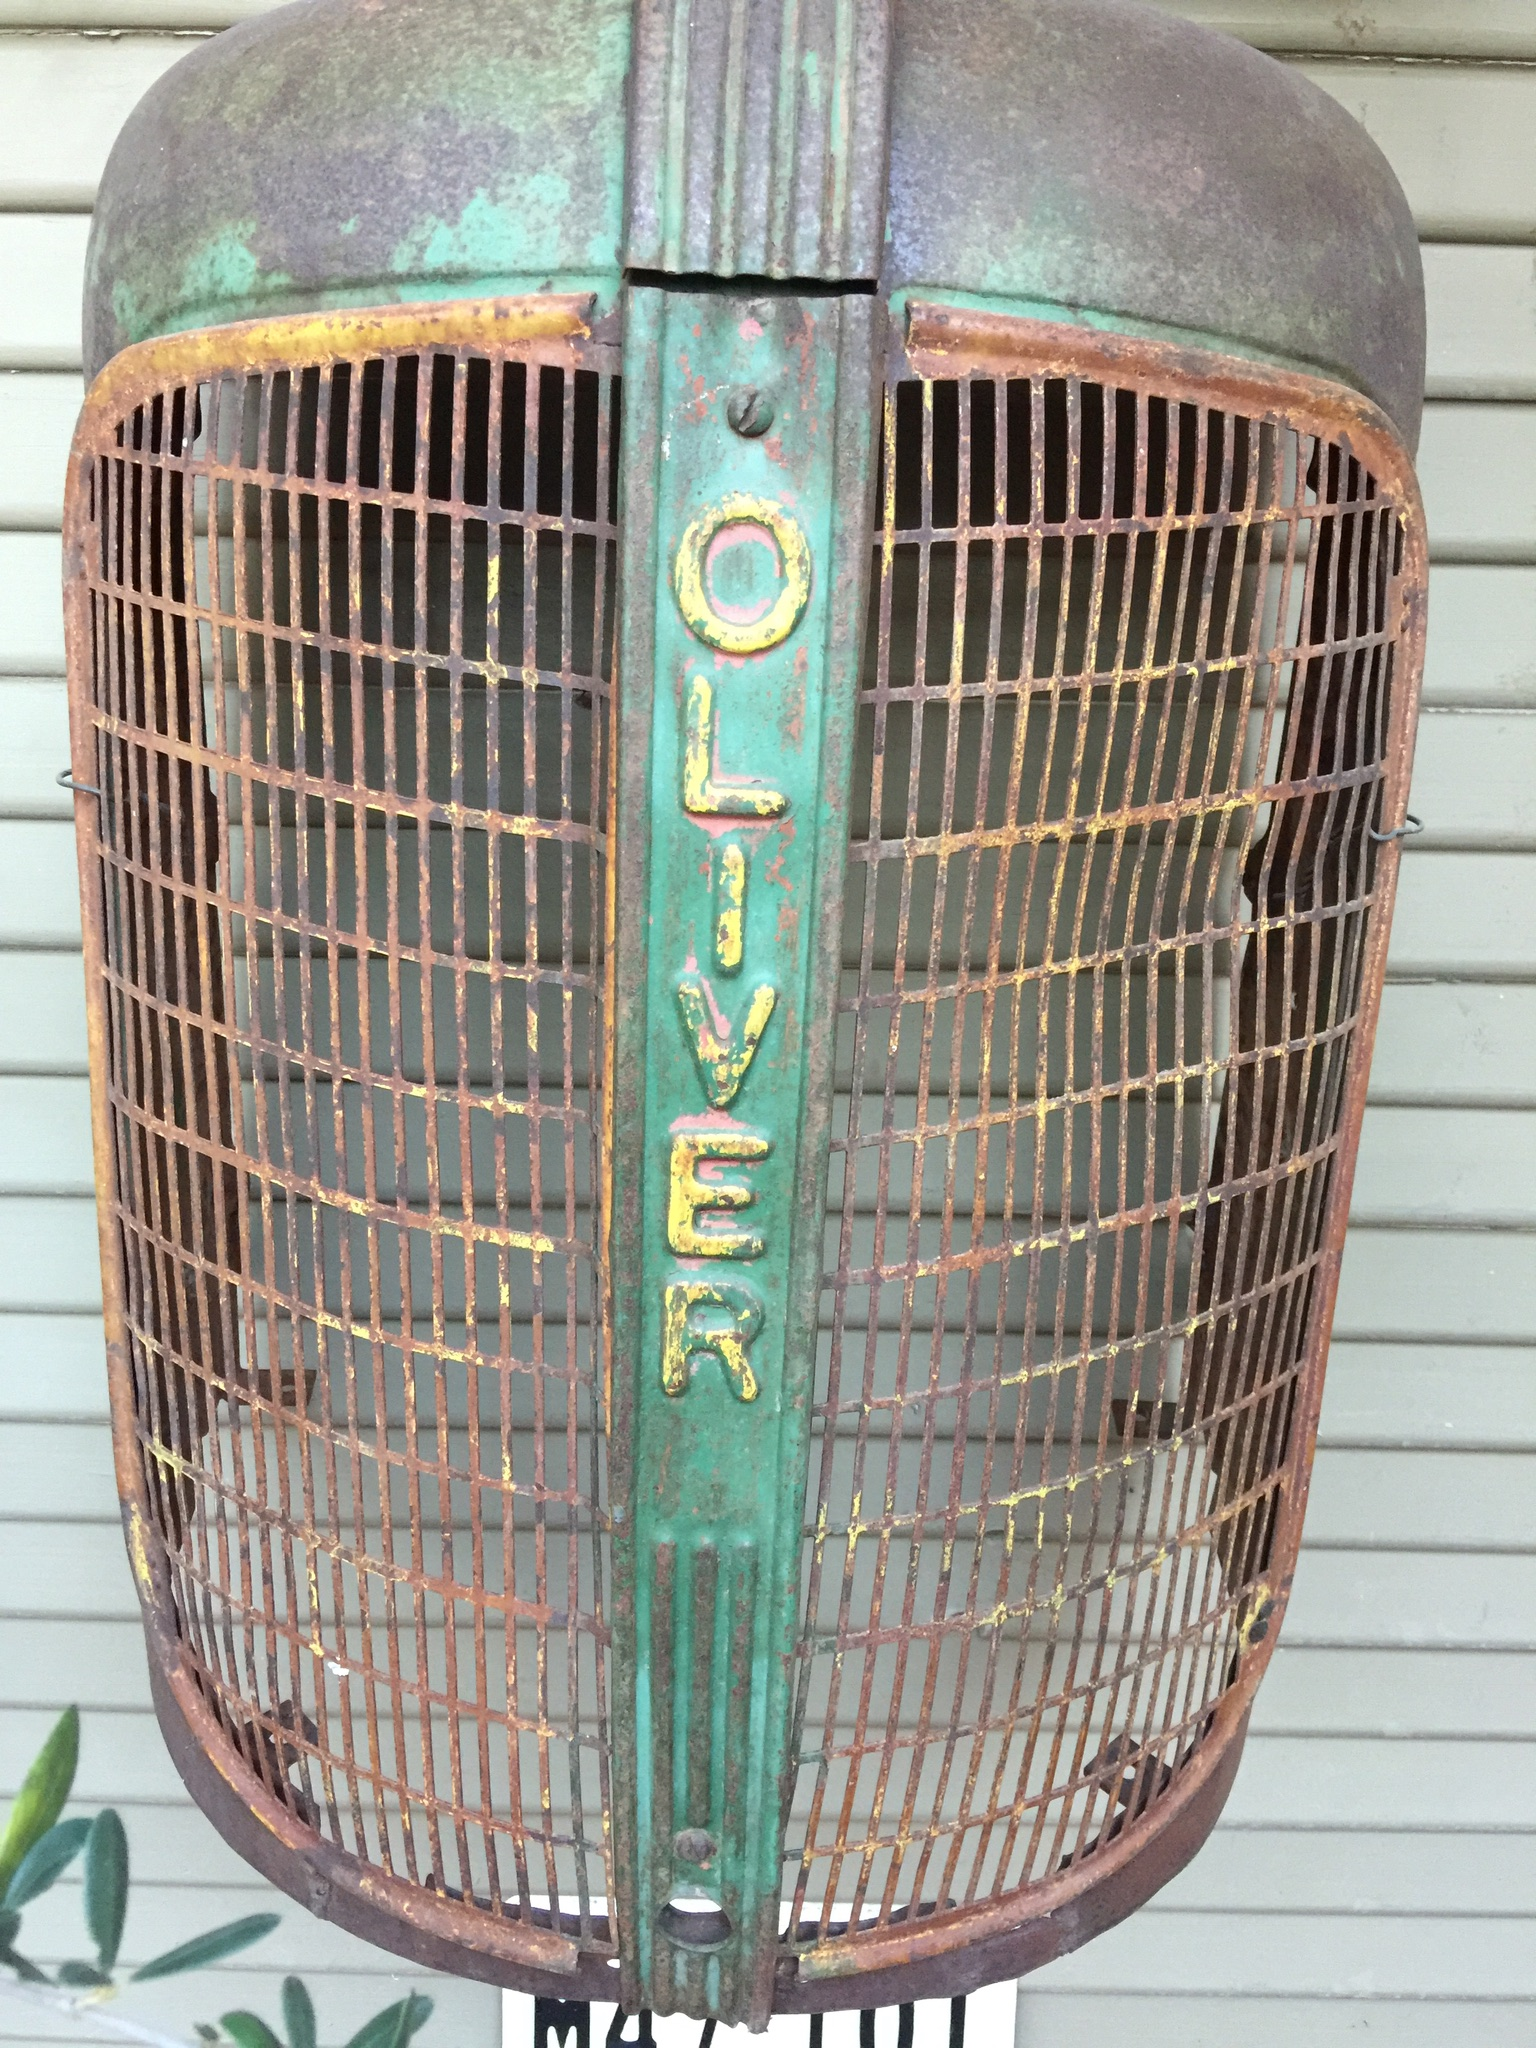 Oliver Tractor grill | Oliver Travel Trailers